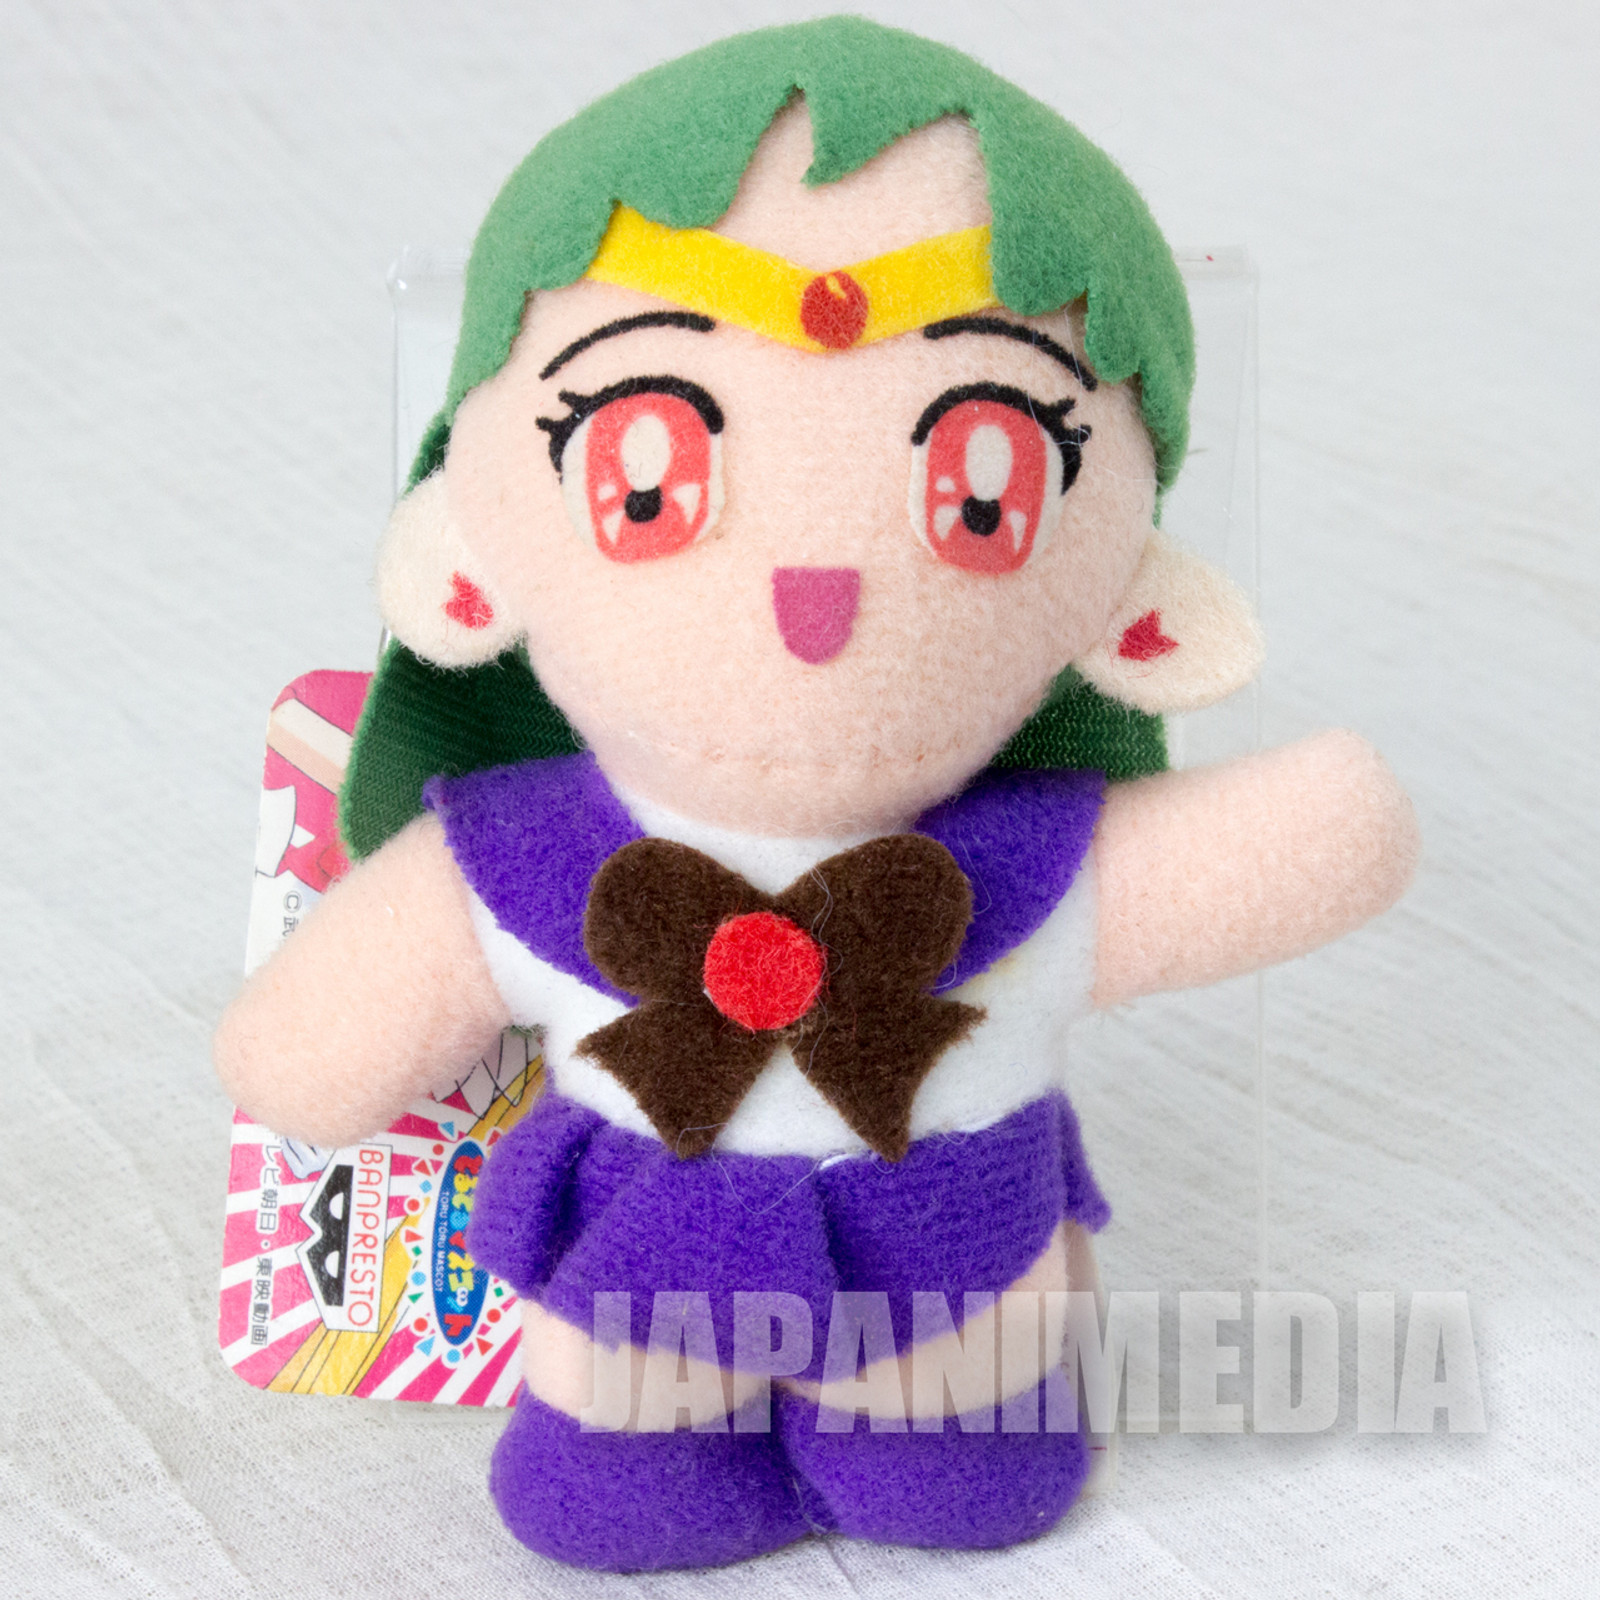 Sailor Moon Sailor Pluto (Setsuna Meioh) Plush Doll Keychain JAPAN ANIME MANGA